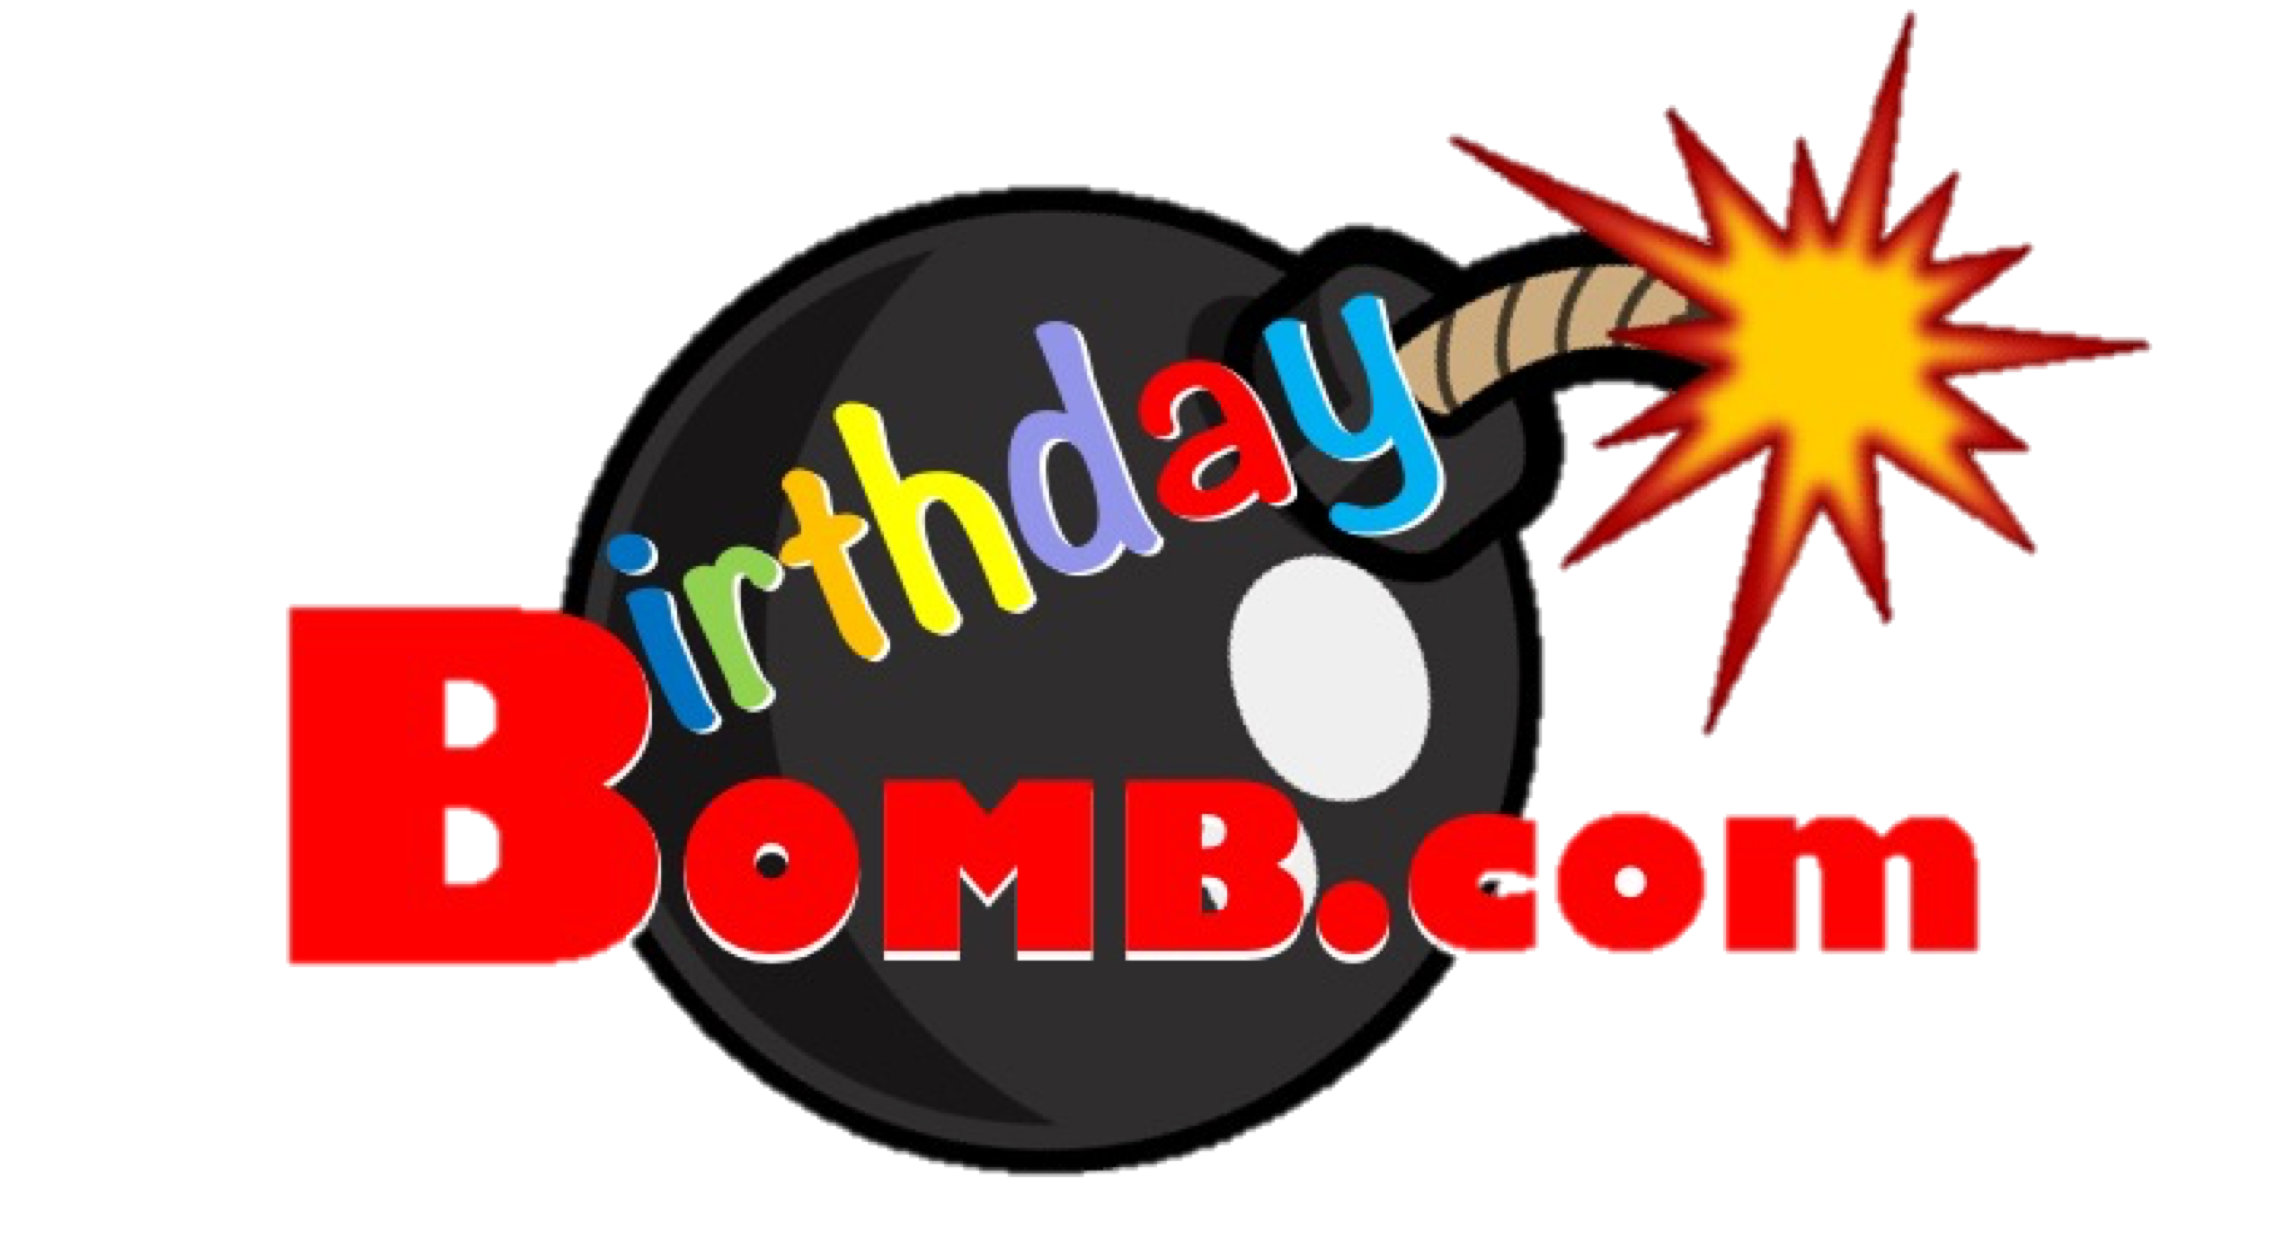 BirthdayBomb.com